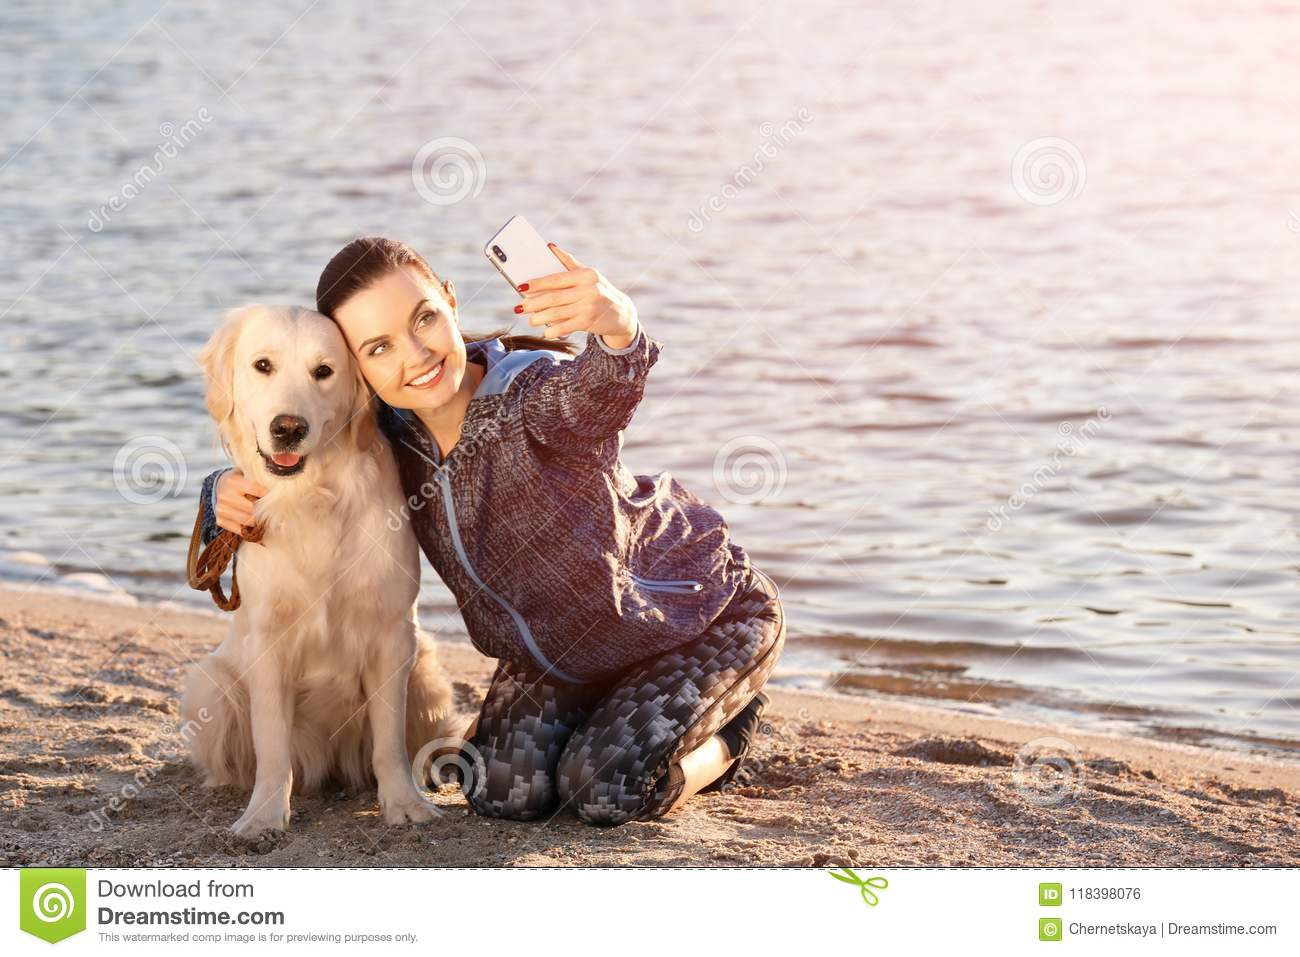 Young woman taking selfie with dog on beach. Pet care